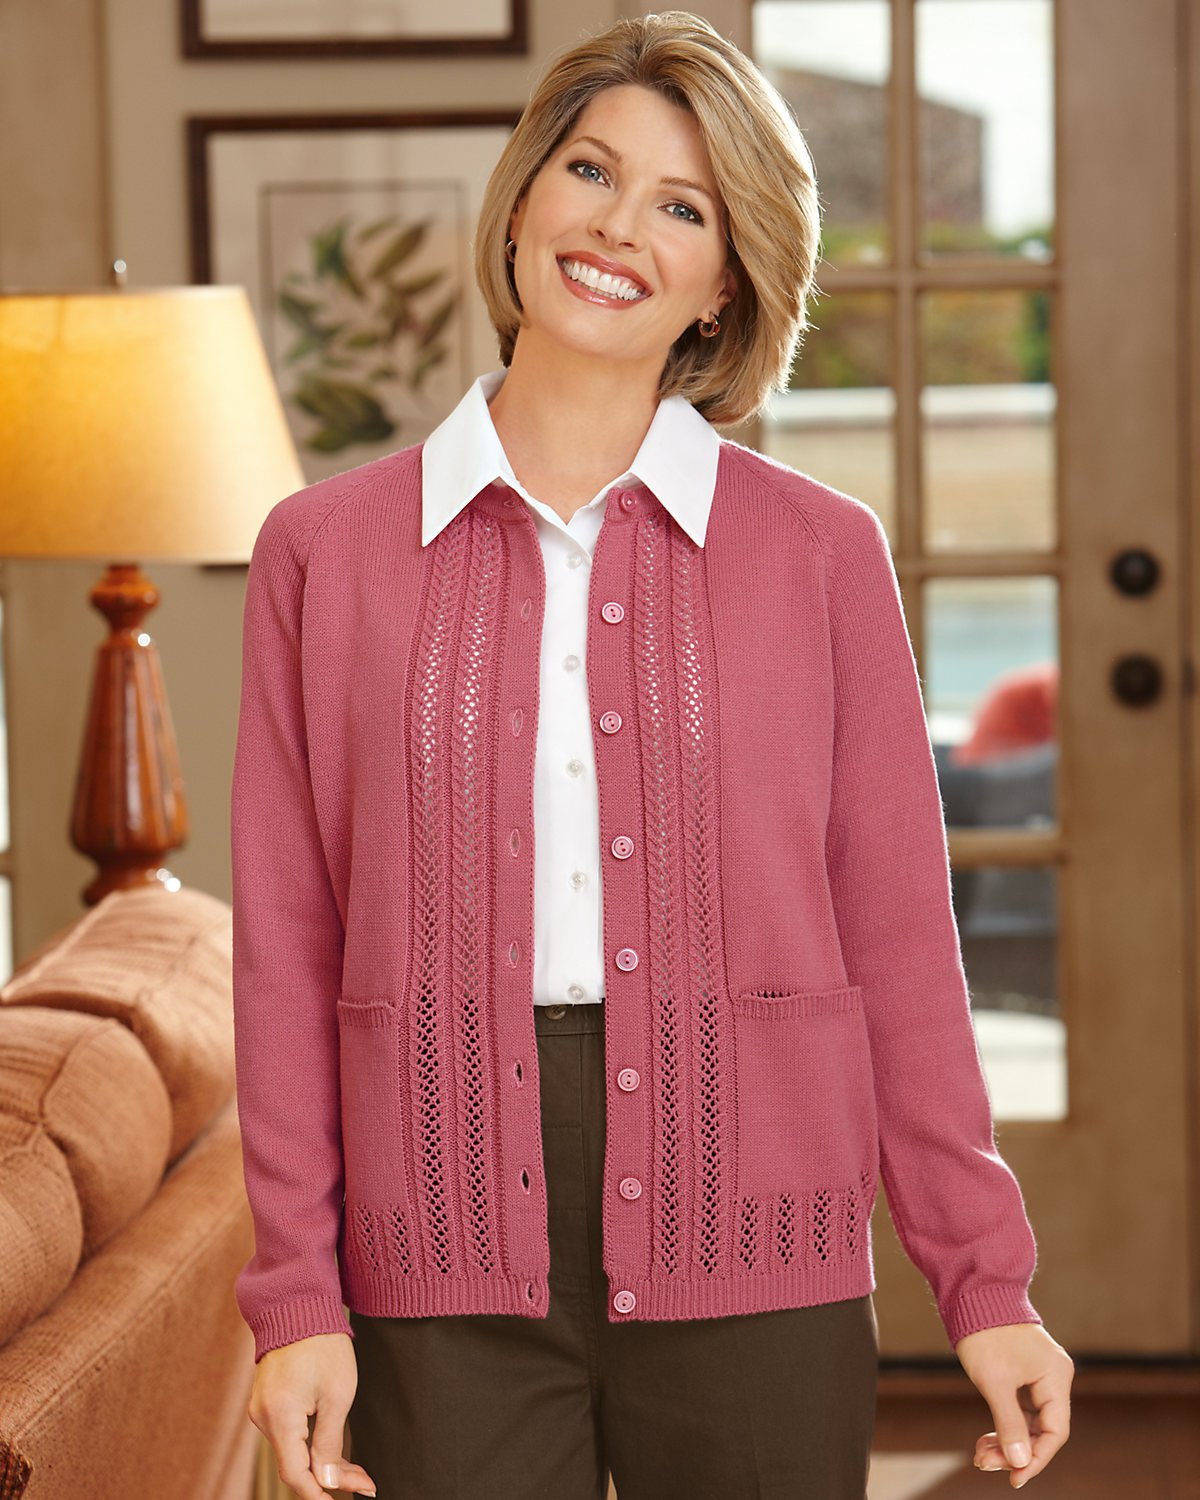 National Classic Cardigan Sweater